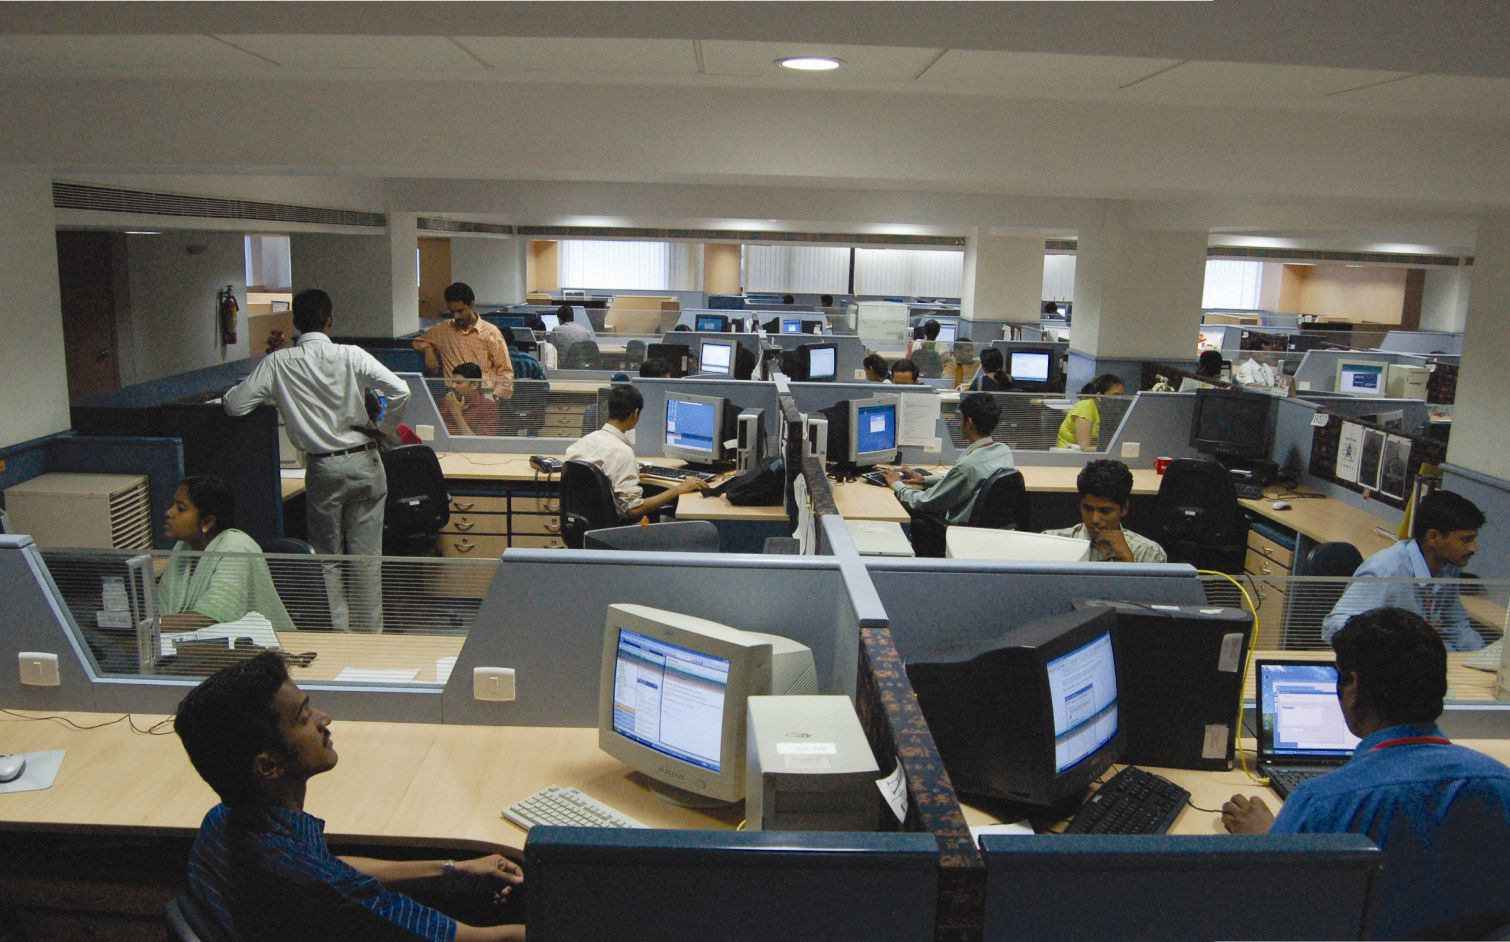 how to open a bpo call center in india